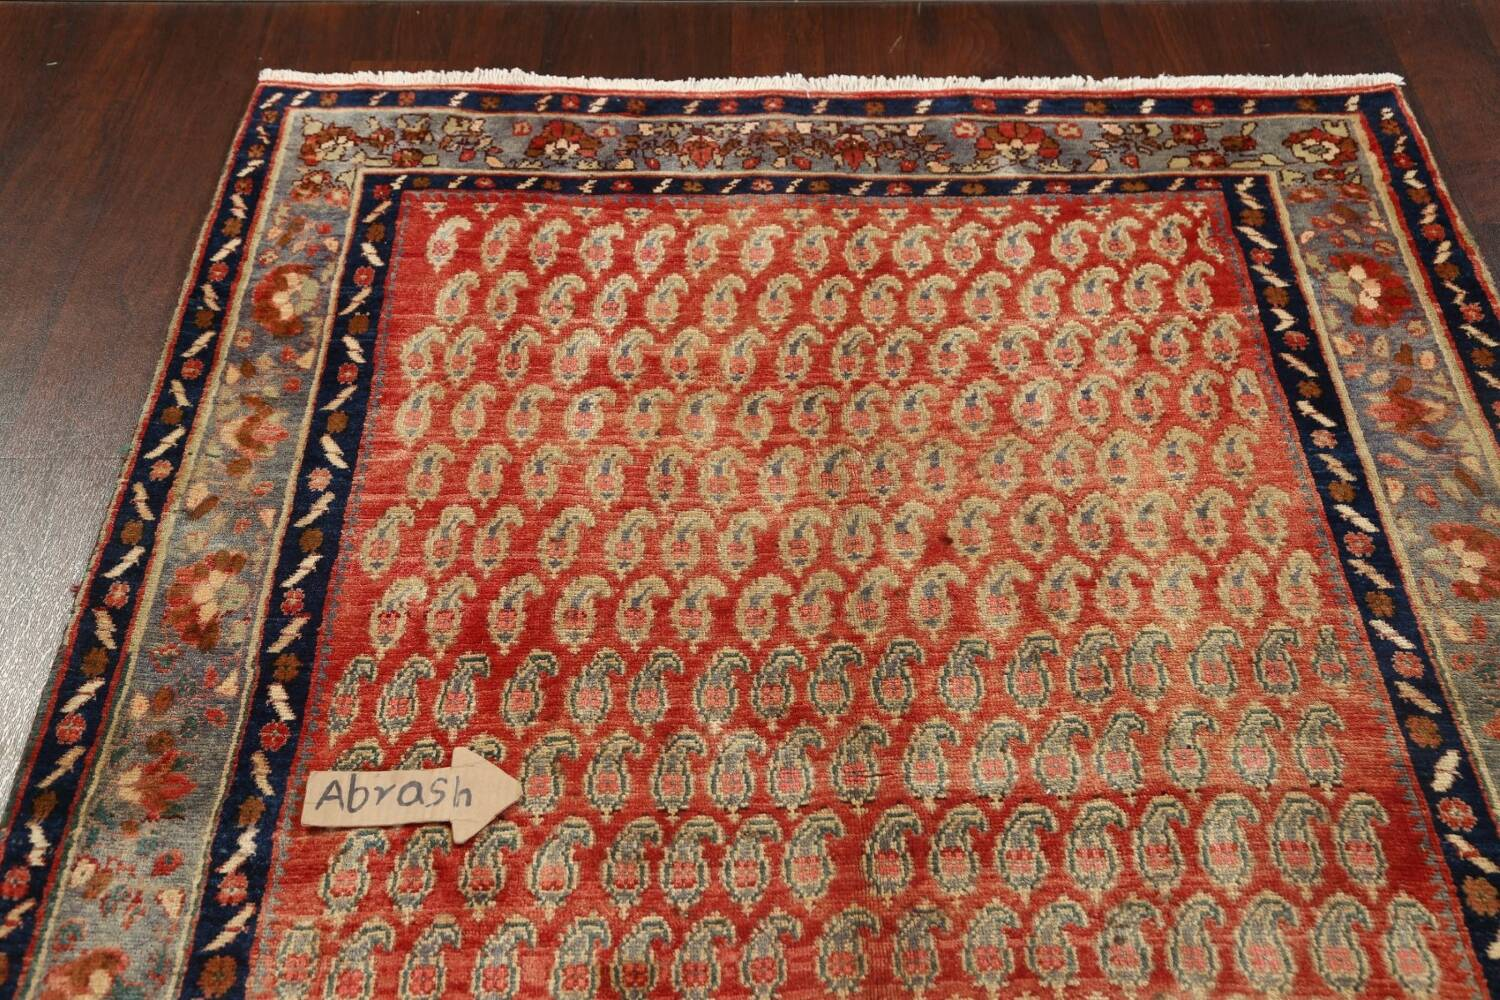 All-Over Boteh Botemir Persian Area Rug 5x7 image 10